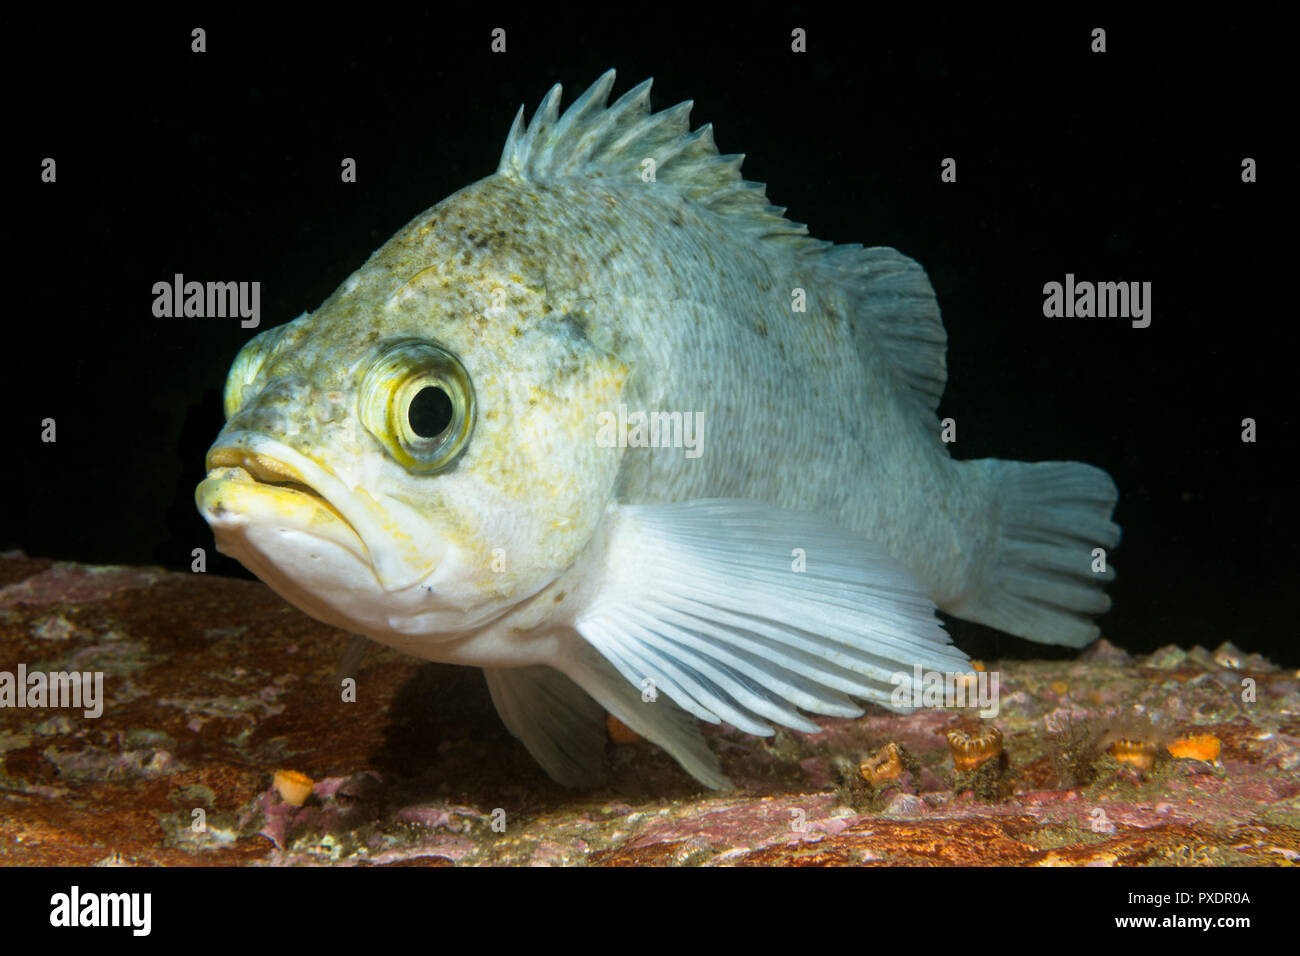 A white rockfish rests on a reef in the waters of California's Channel Islands. - Stock Image